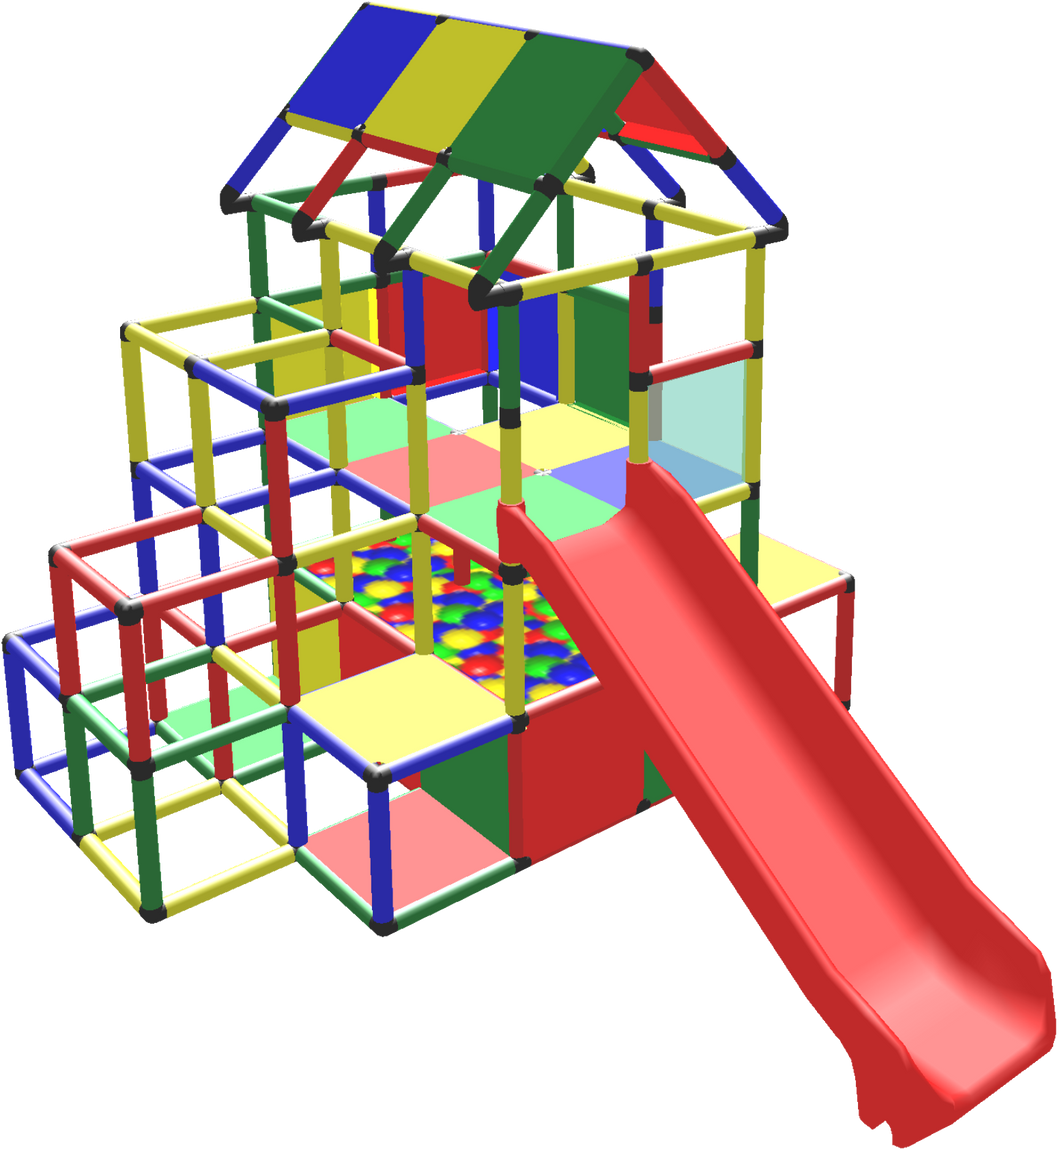 Kansas Residential Playset